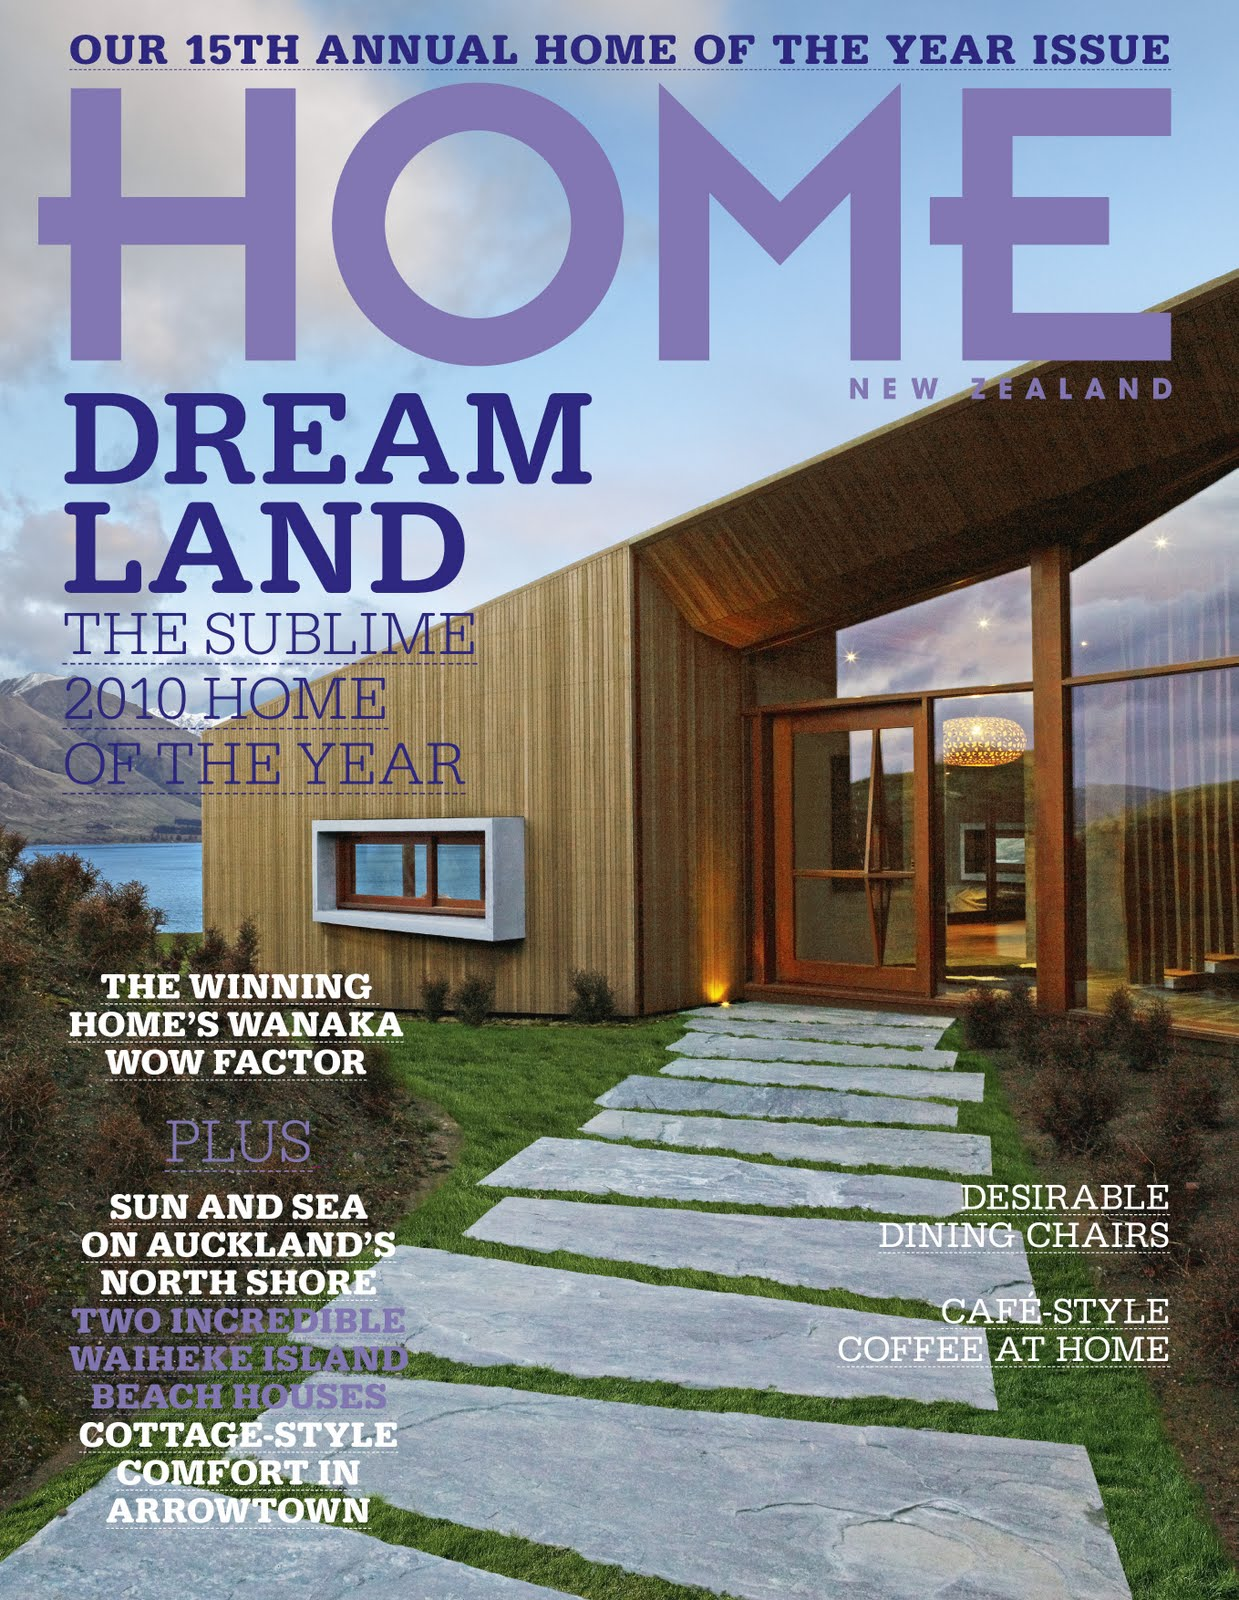 Design And Interior Home: July 2010 on gold house design, palace house design, man house design, beach house design, pretty house design, home house design, harbor house design, cave house design, sports house design, salt house design, food house design, fishing house design, tys house design, jungle house design, sunshine house design, mountain range house design, space house design, biosphere house design, hotel house design, ground house design,